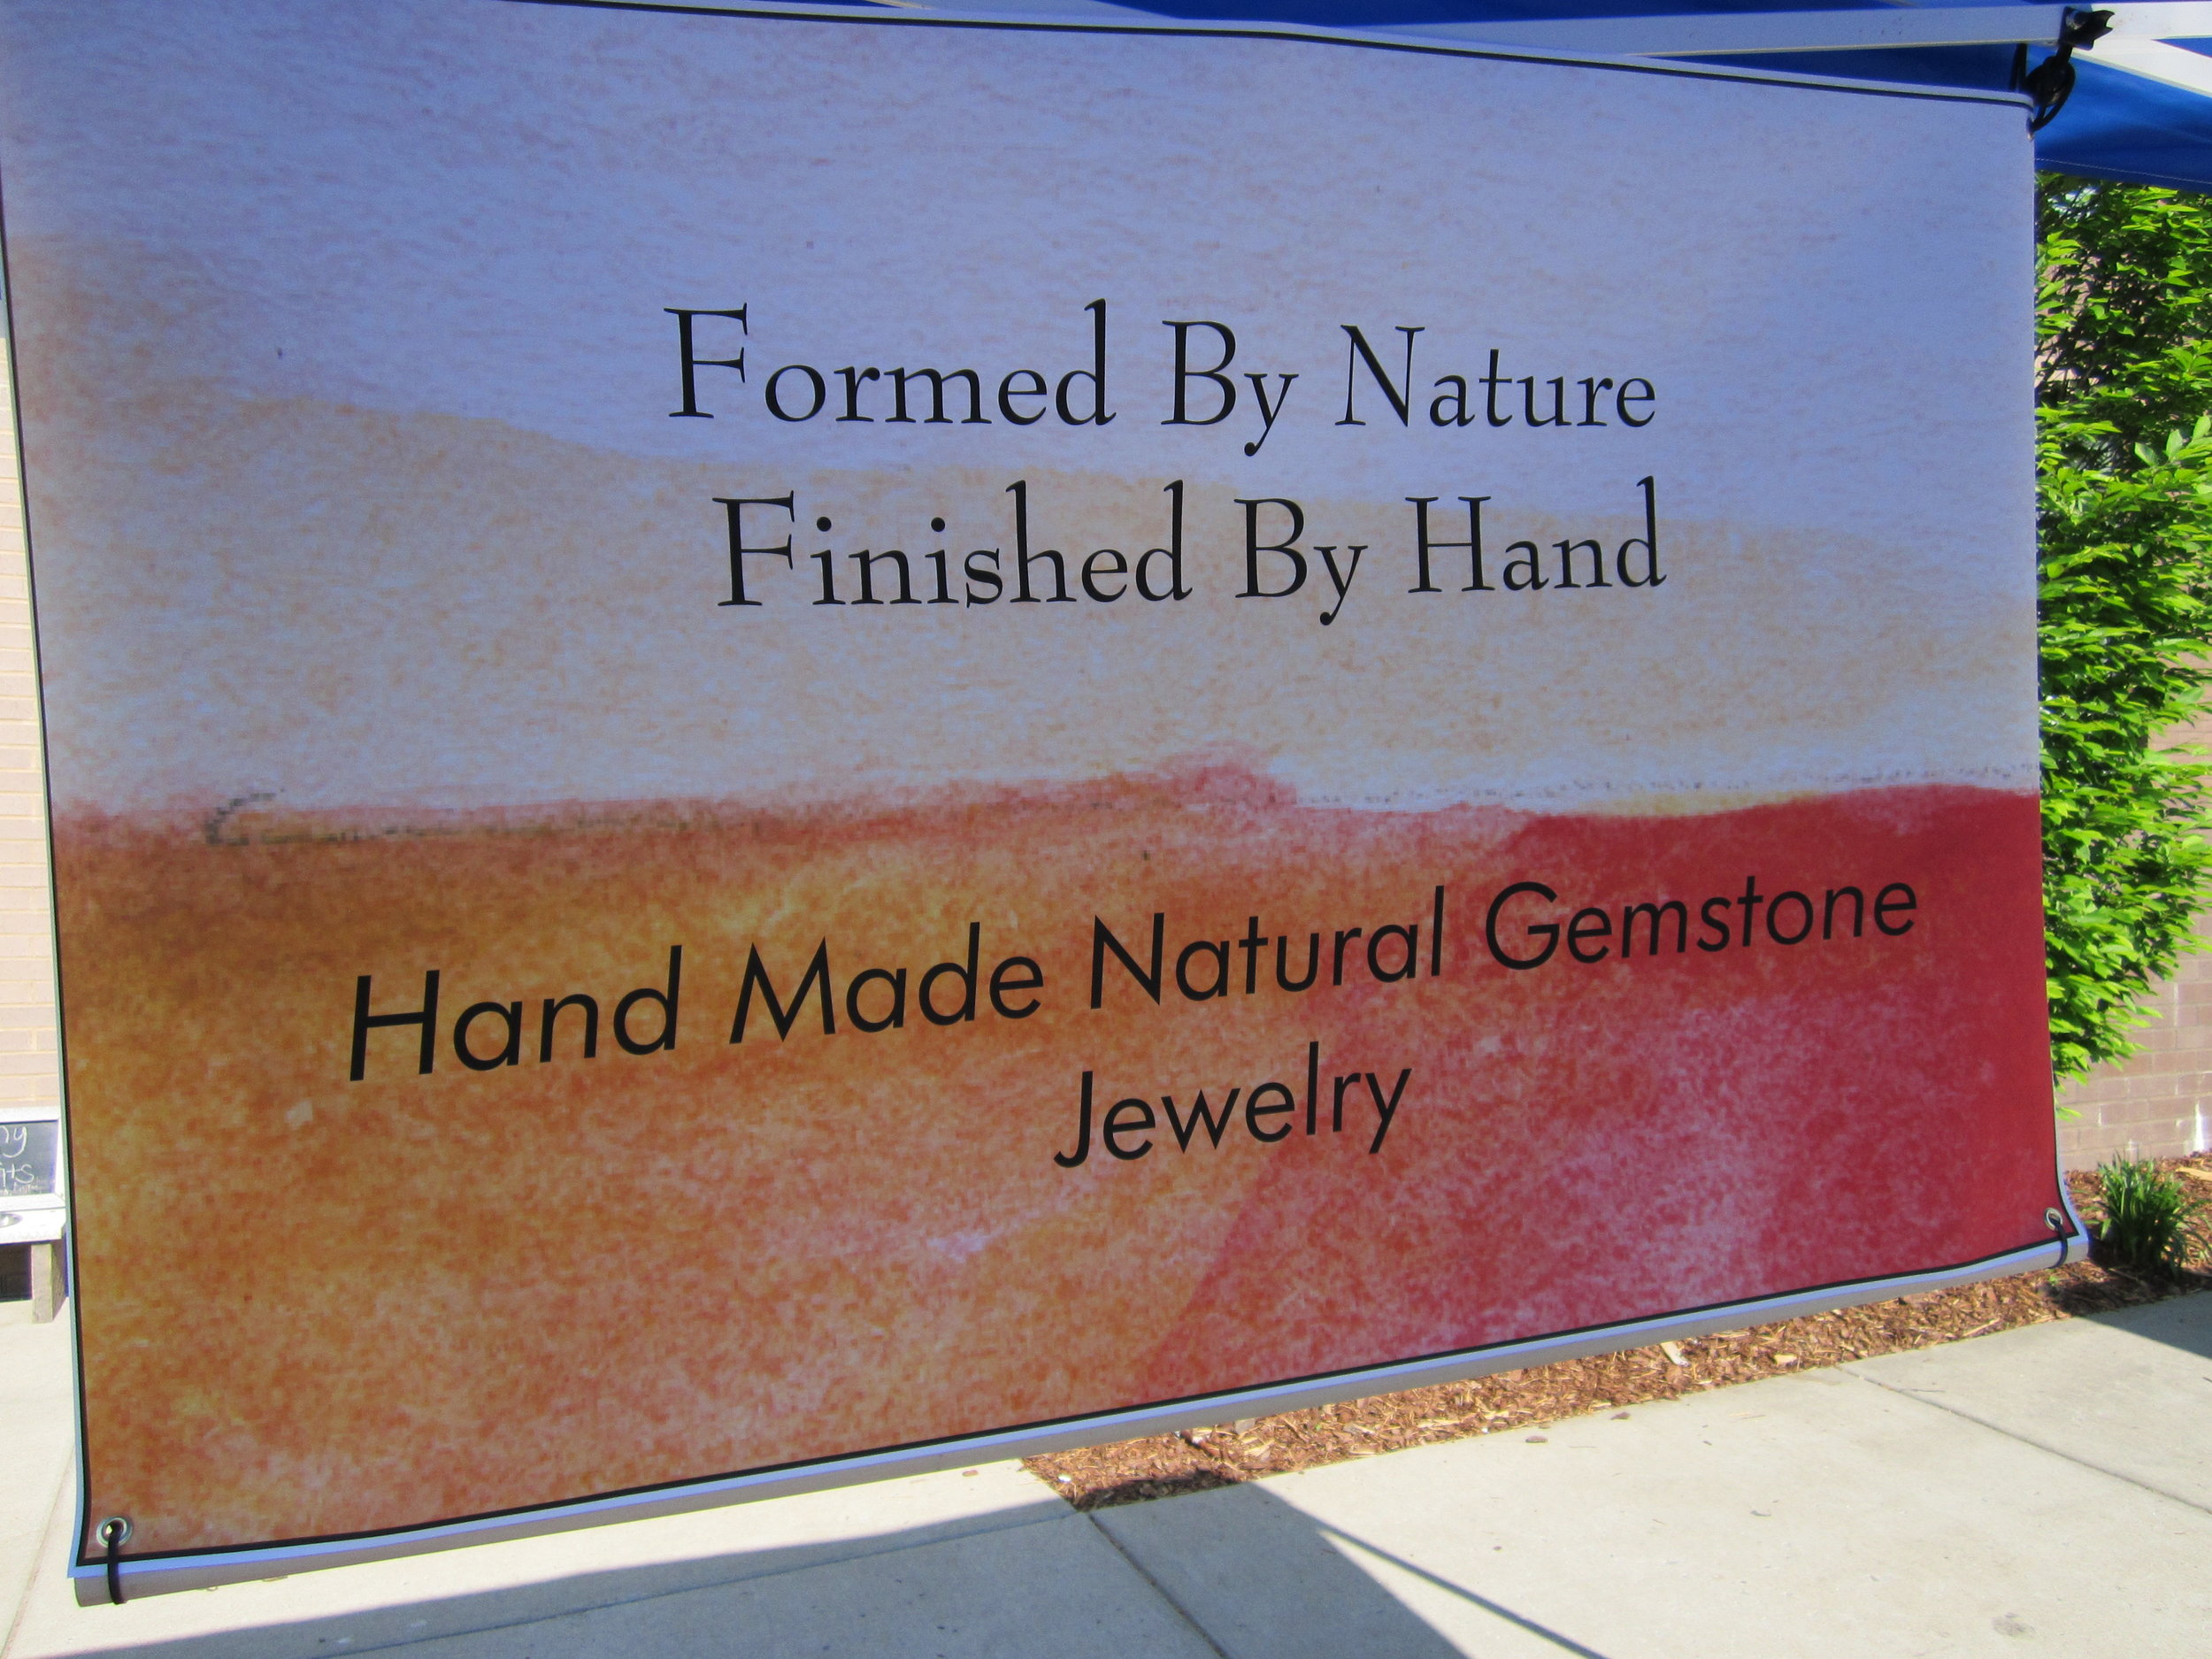 Formed By Nature.jpg